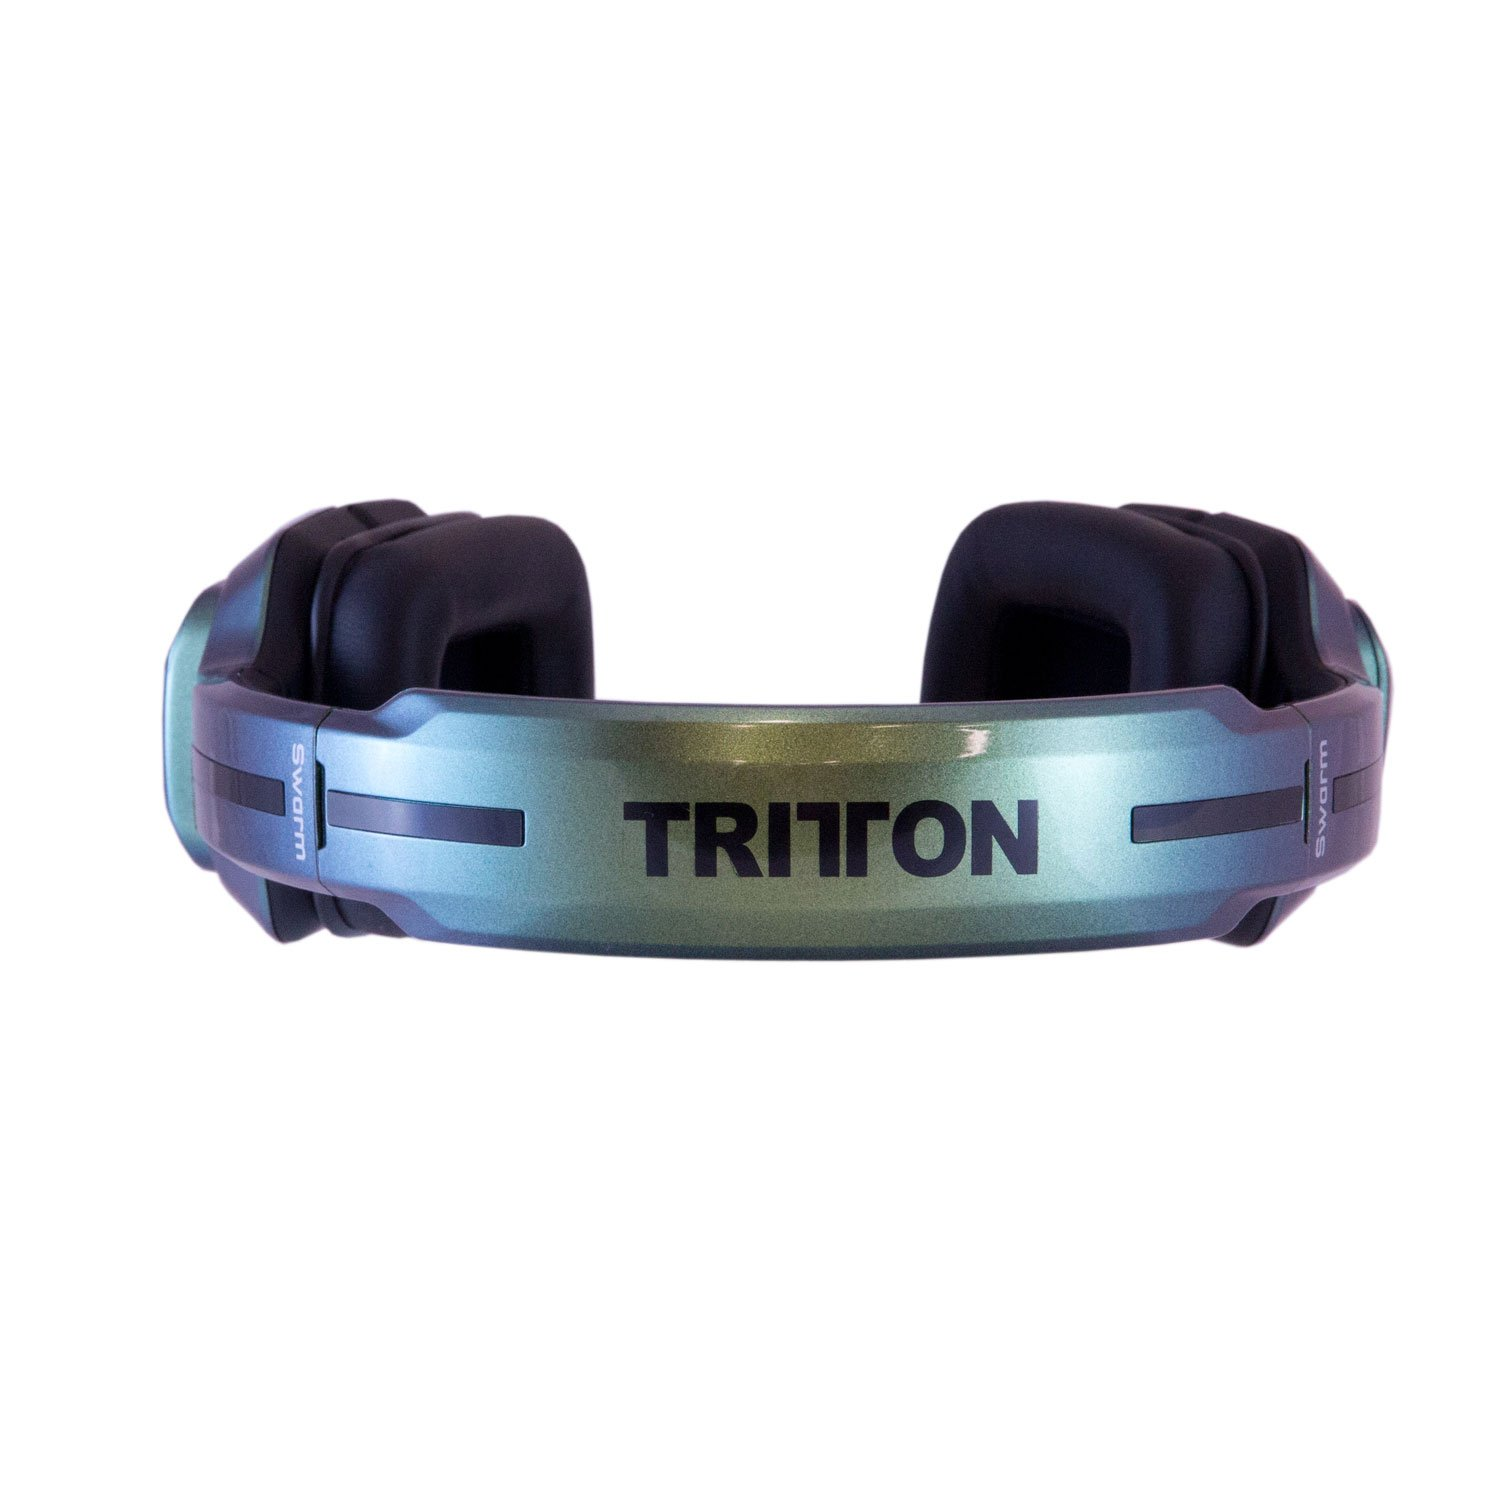 e2d2626f980 Tritton Swarm Wireless Mobile Surround Headset - Green: Amazon.co.uk:  Electronics